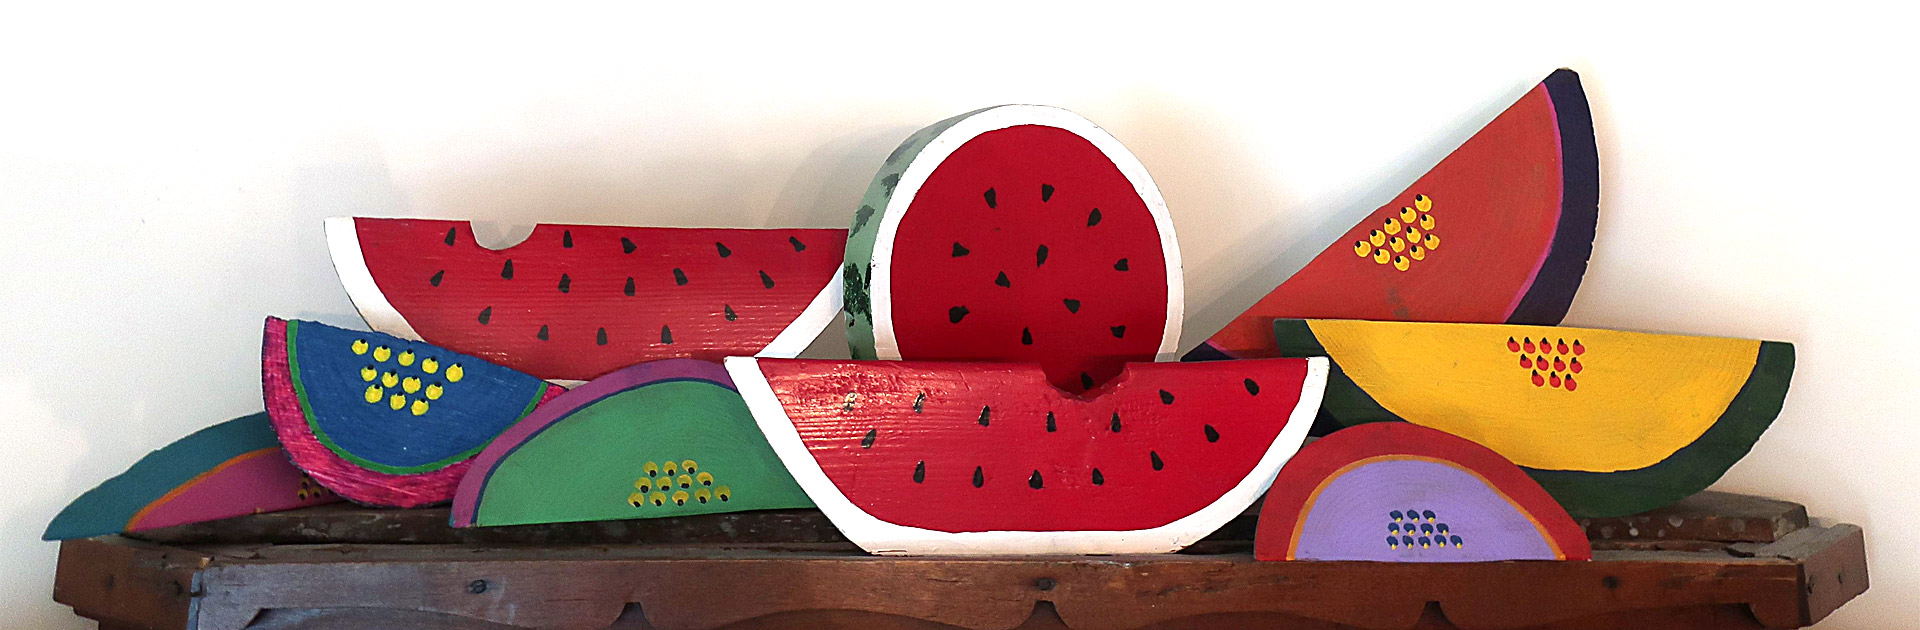 Collection of watermelon art